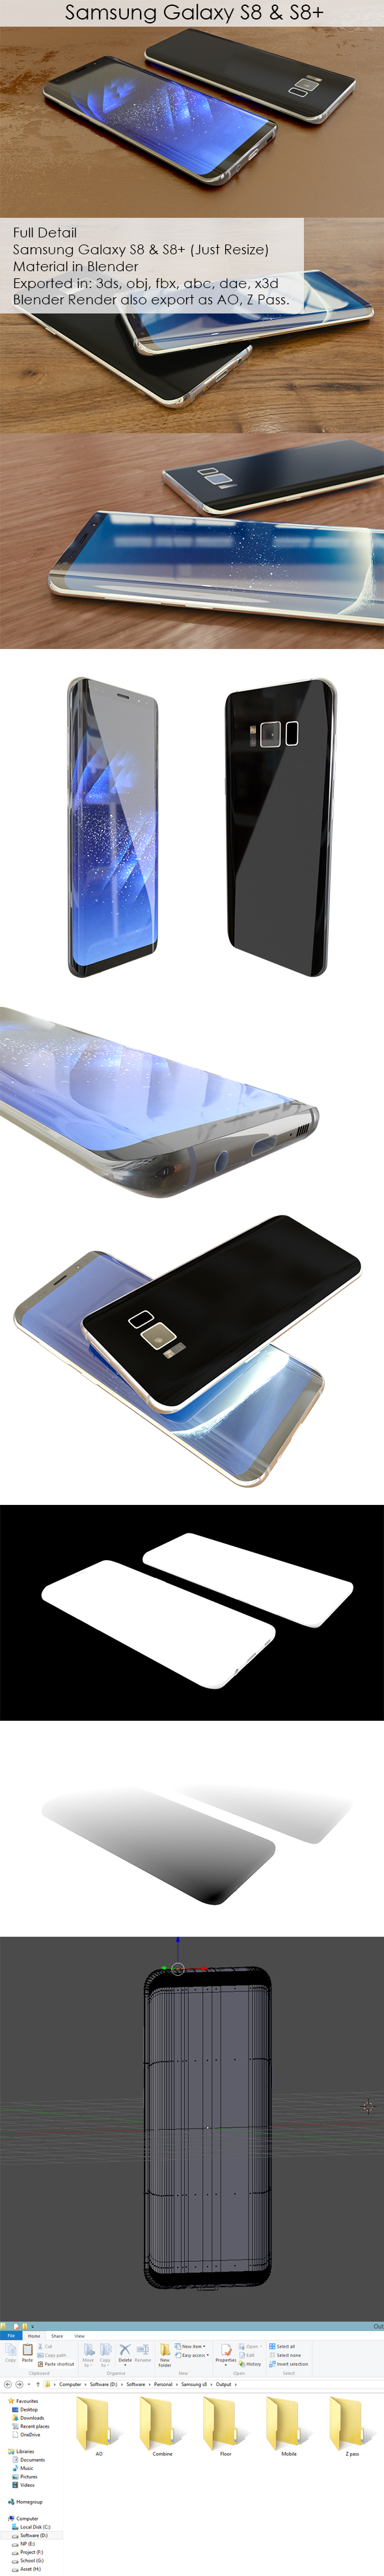 Samsung galaxy s8 - 3DOcean Item for Sale